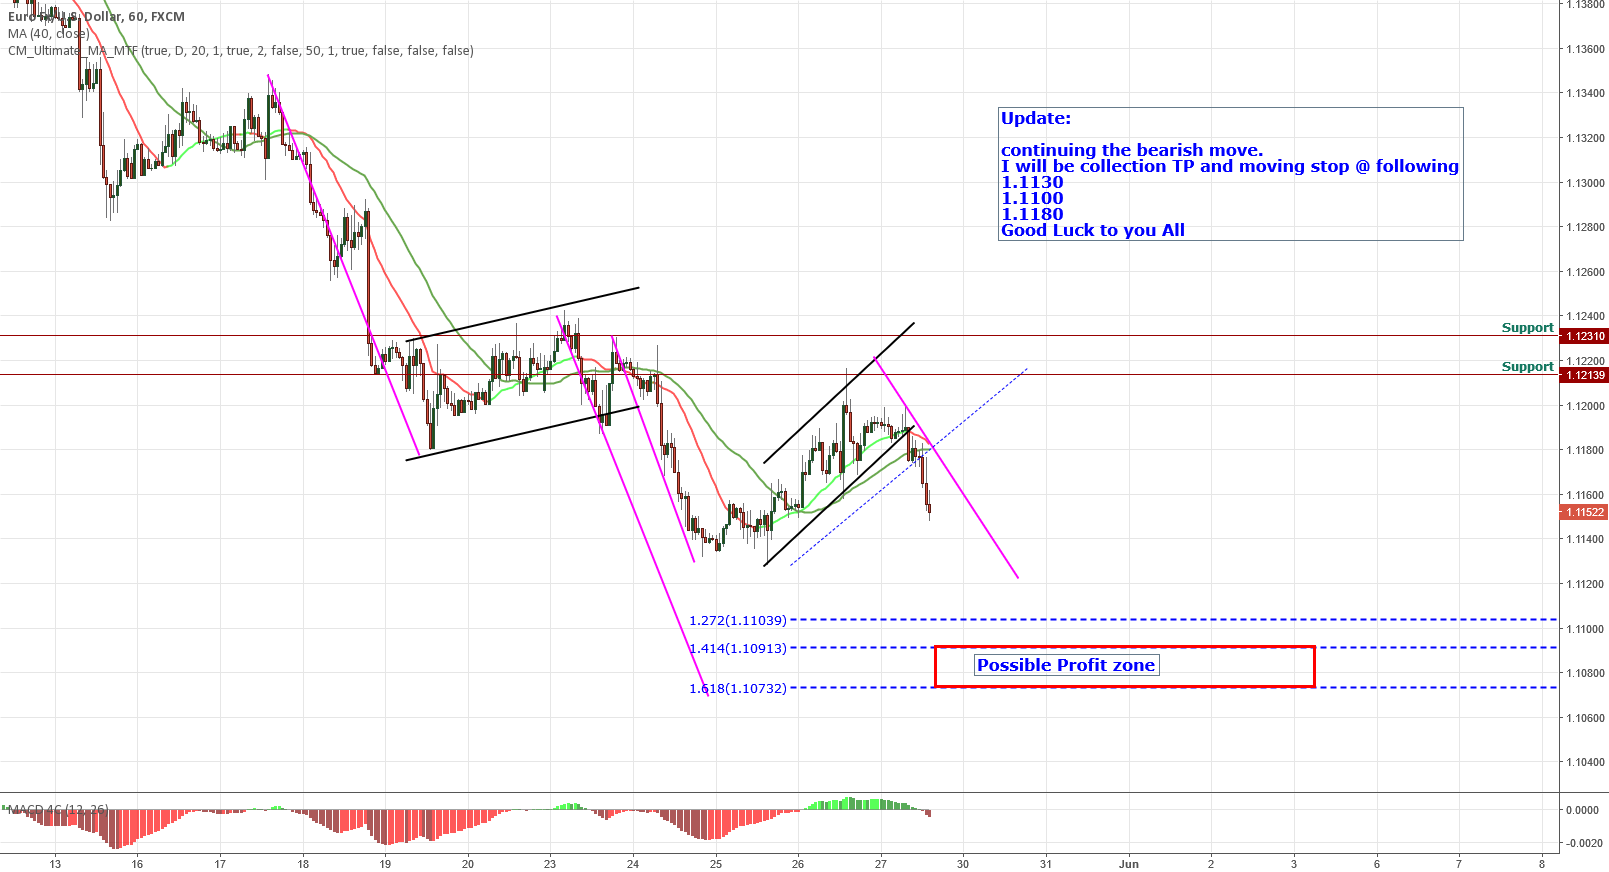 EURUSD CONTINUING ITS BEARISH PATH